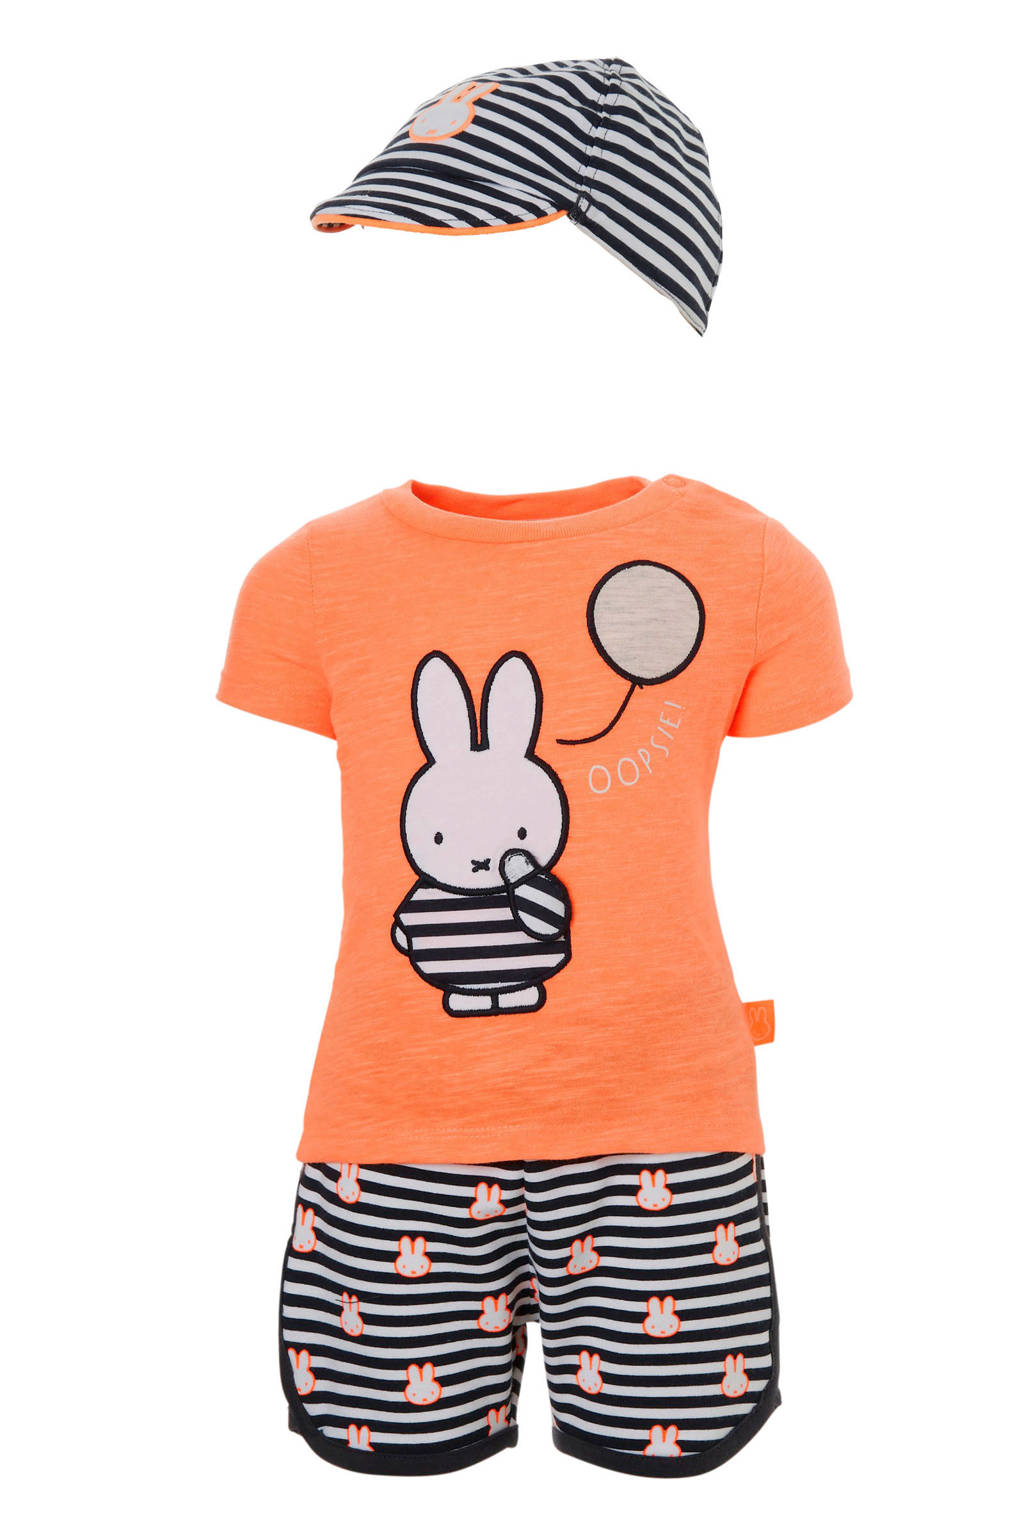 C&A nijntje T-shirt + sweatshort + pet, Oranje/antraciet